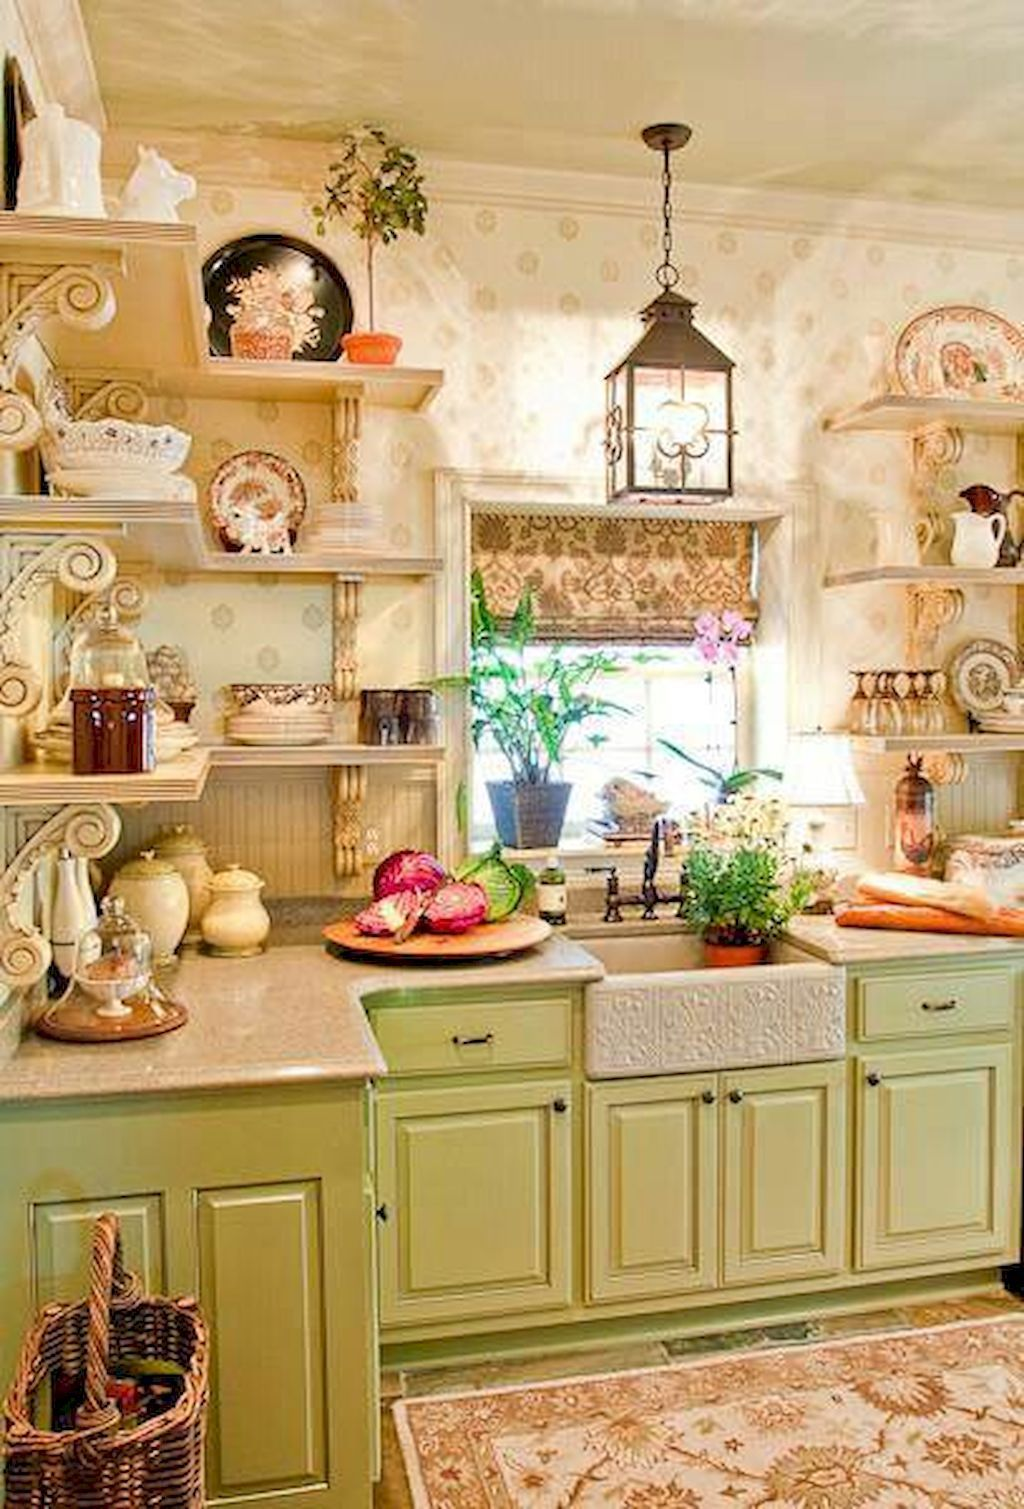 Modern french country kitchen decorating ideas dentro la casa